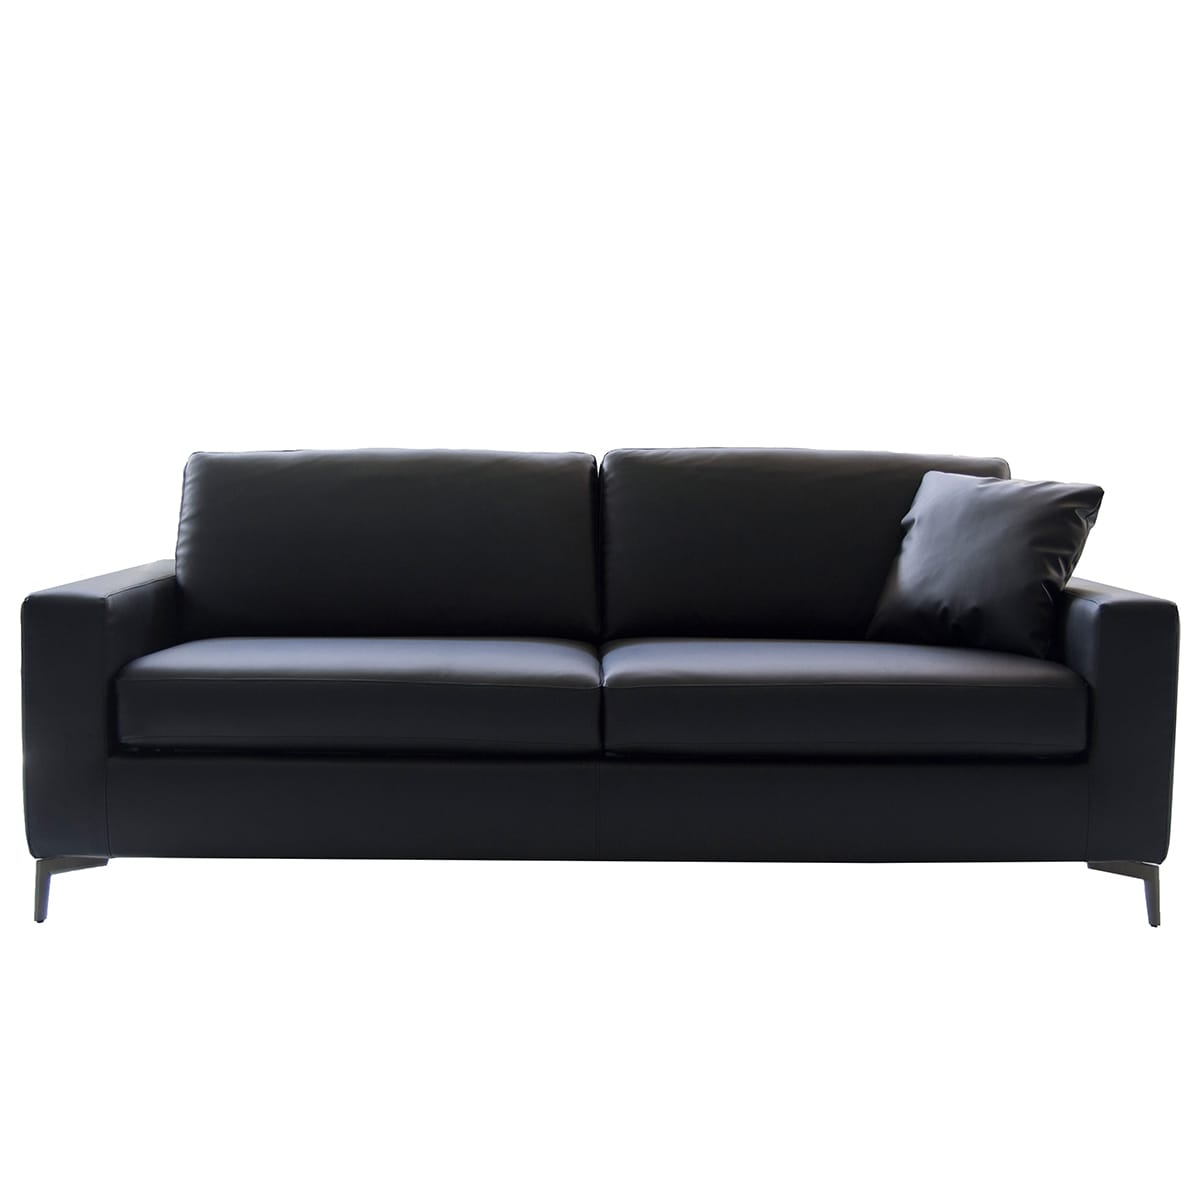 Mistral Sleeper Sofa by Pezzan